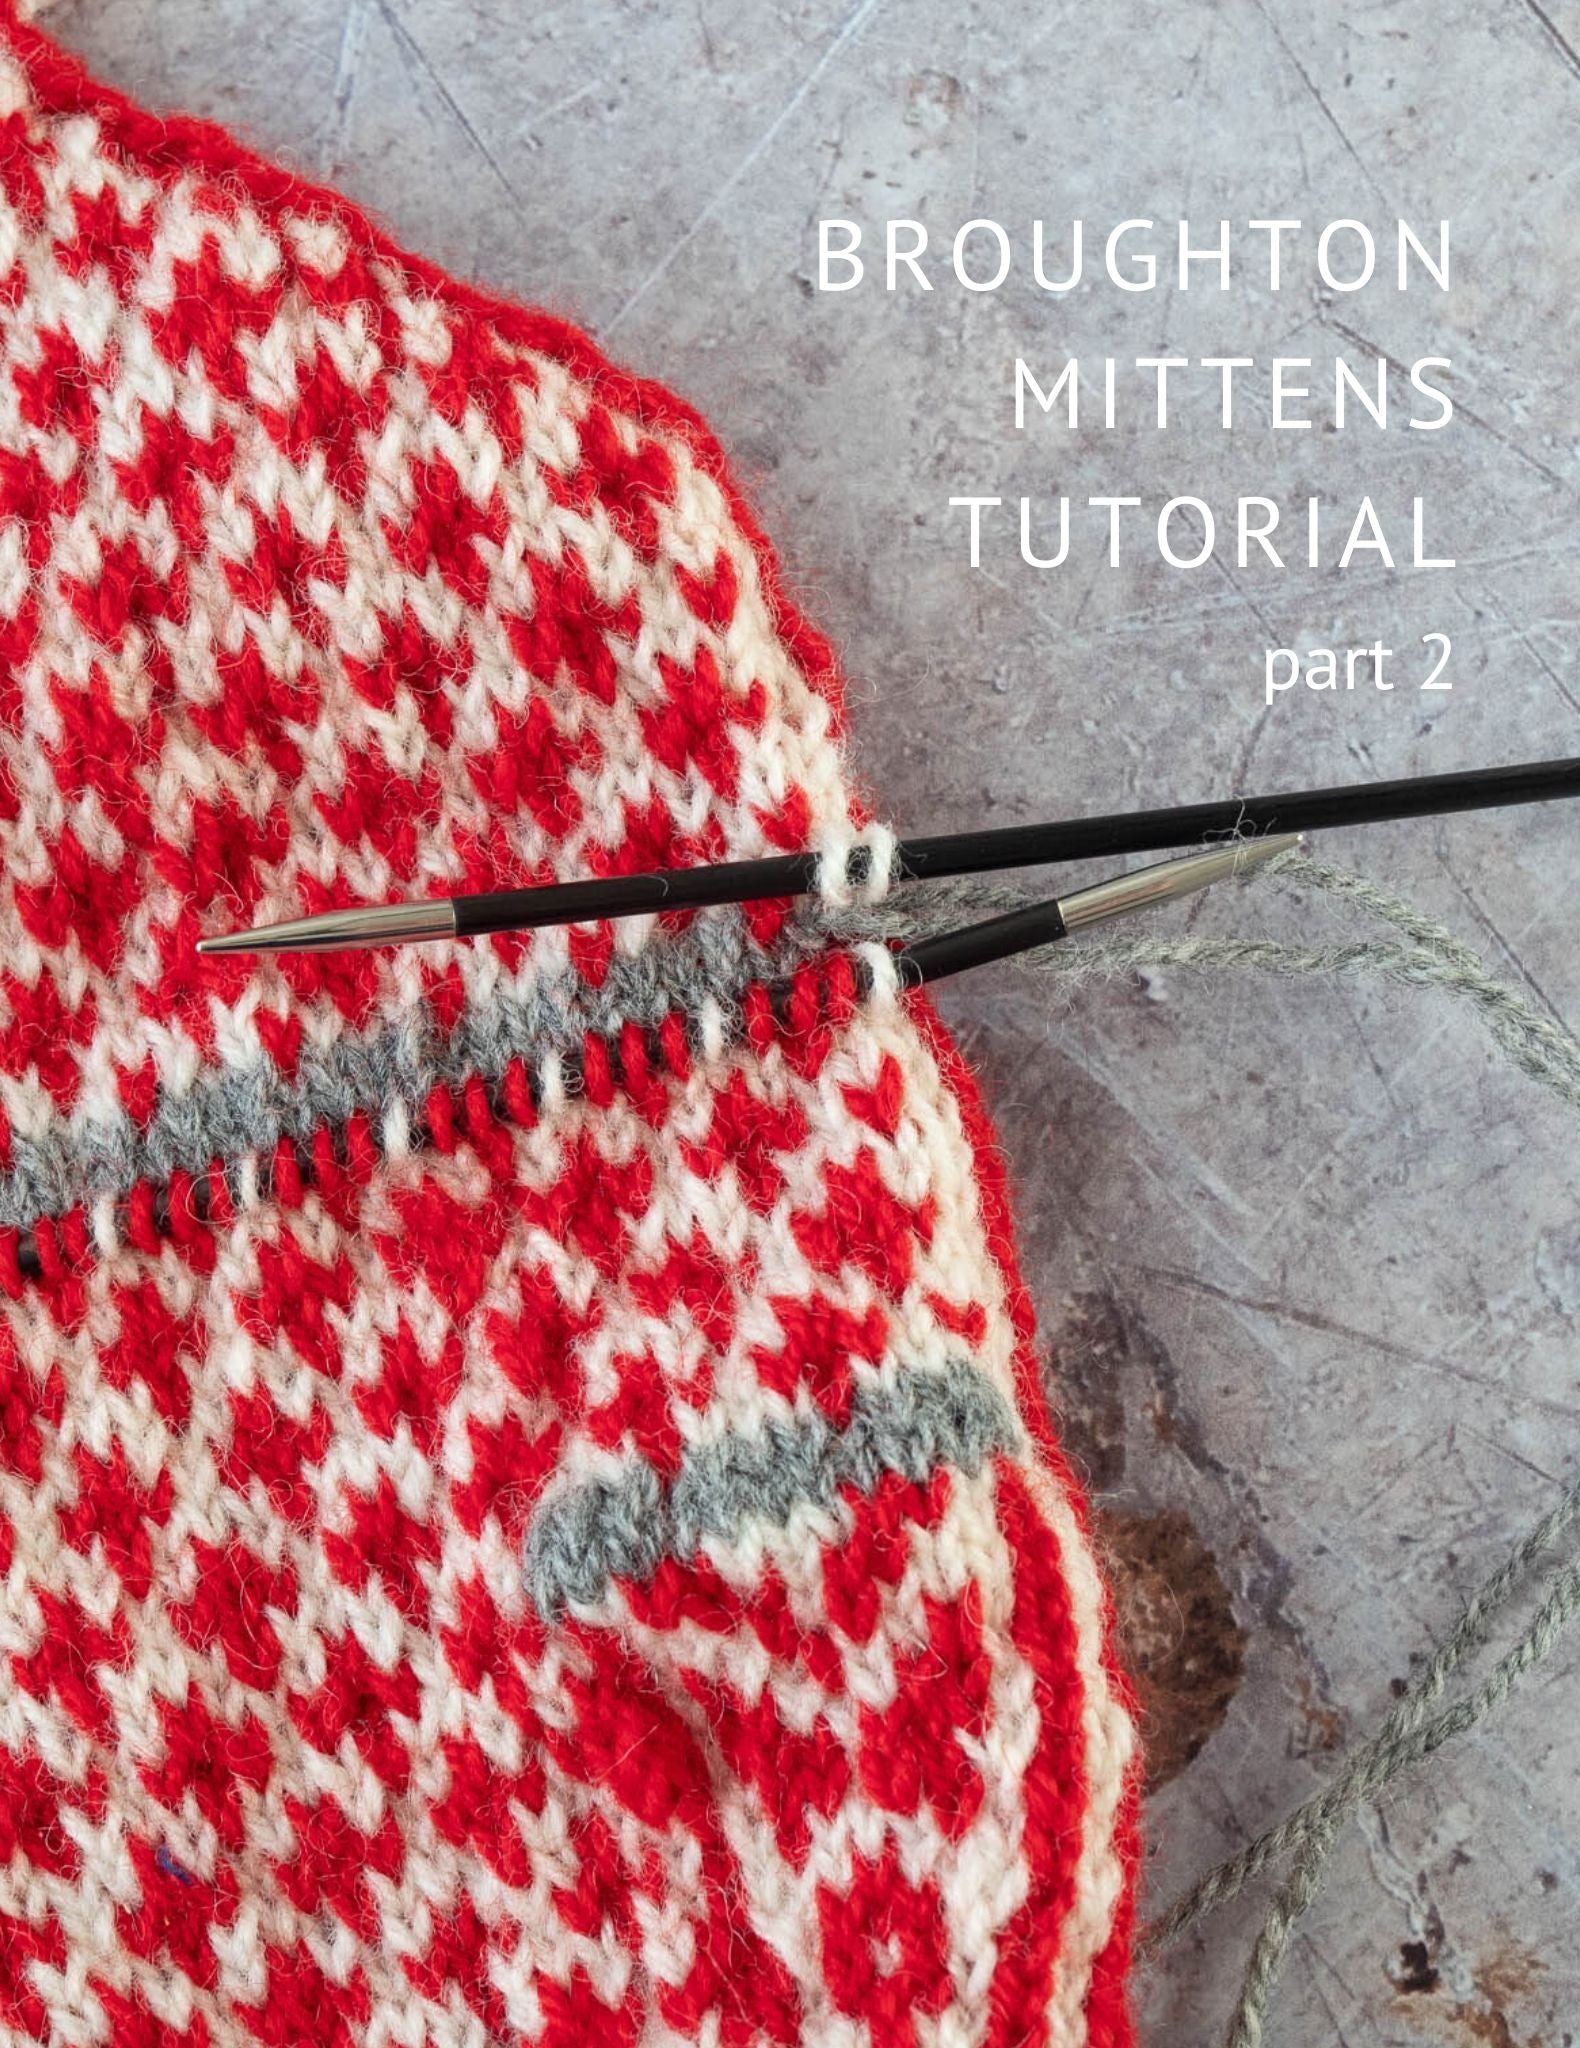 Broughton mittens tutorial part 2